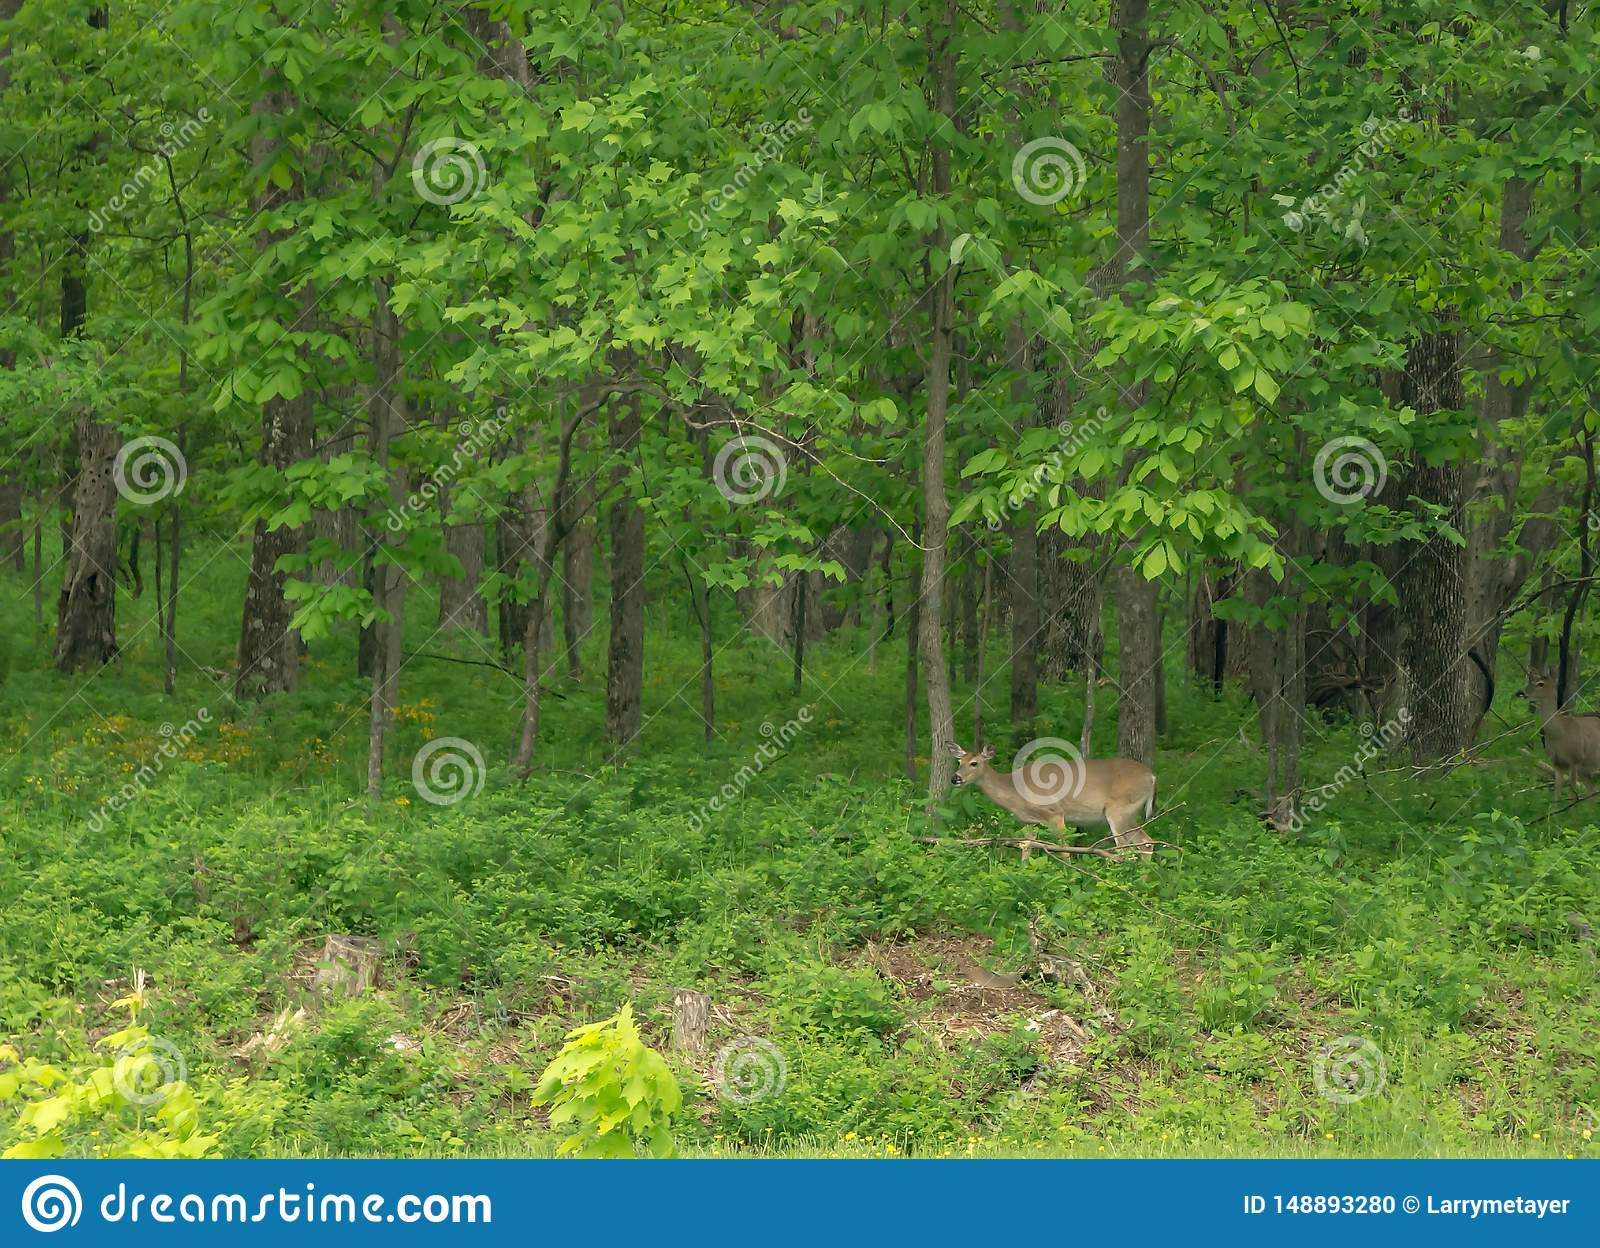 The Edge Bedford >> Female Deer By The Edge Of The Woods Stock Photo Image Of